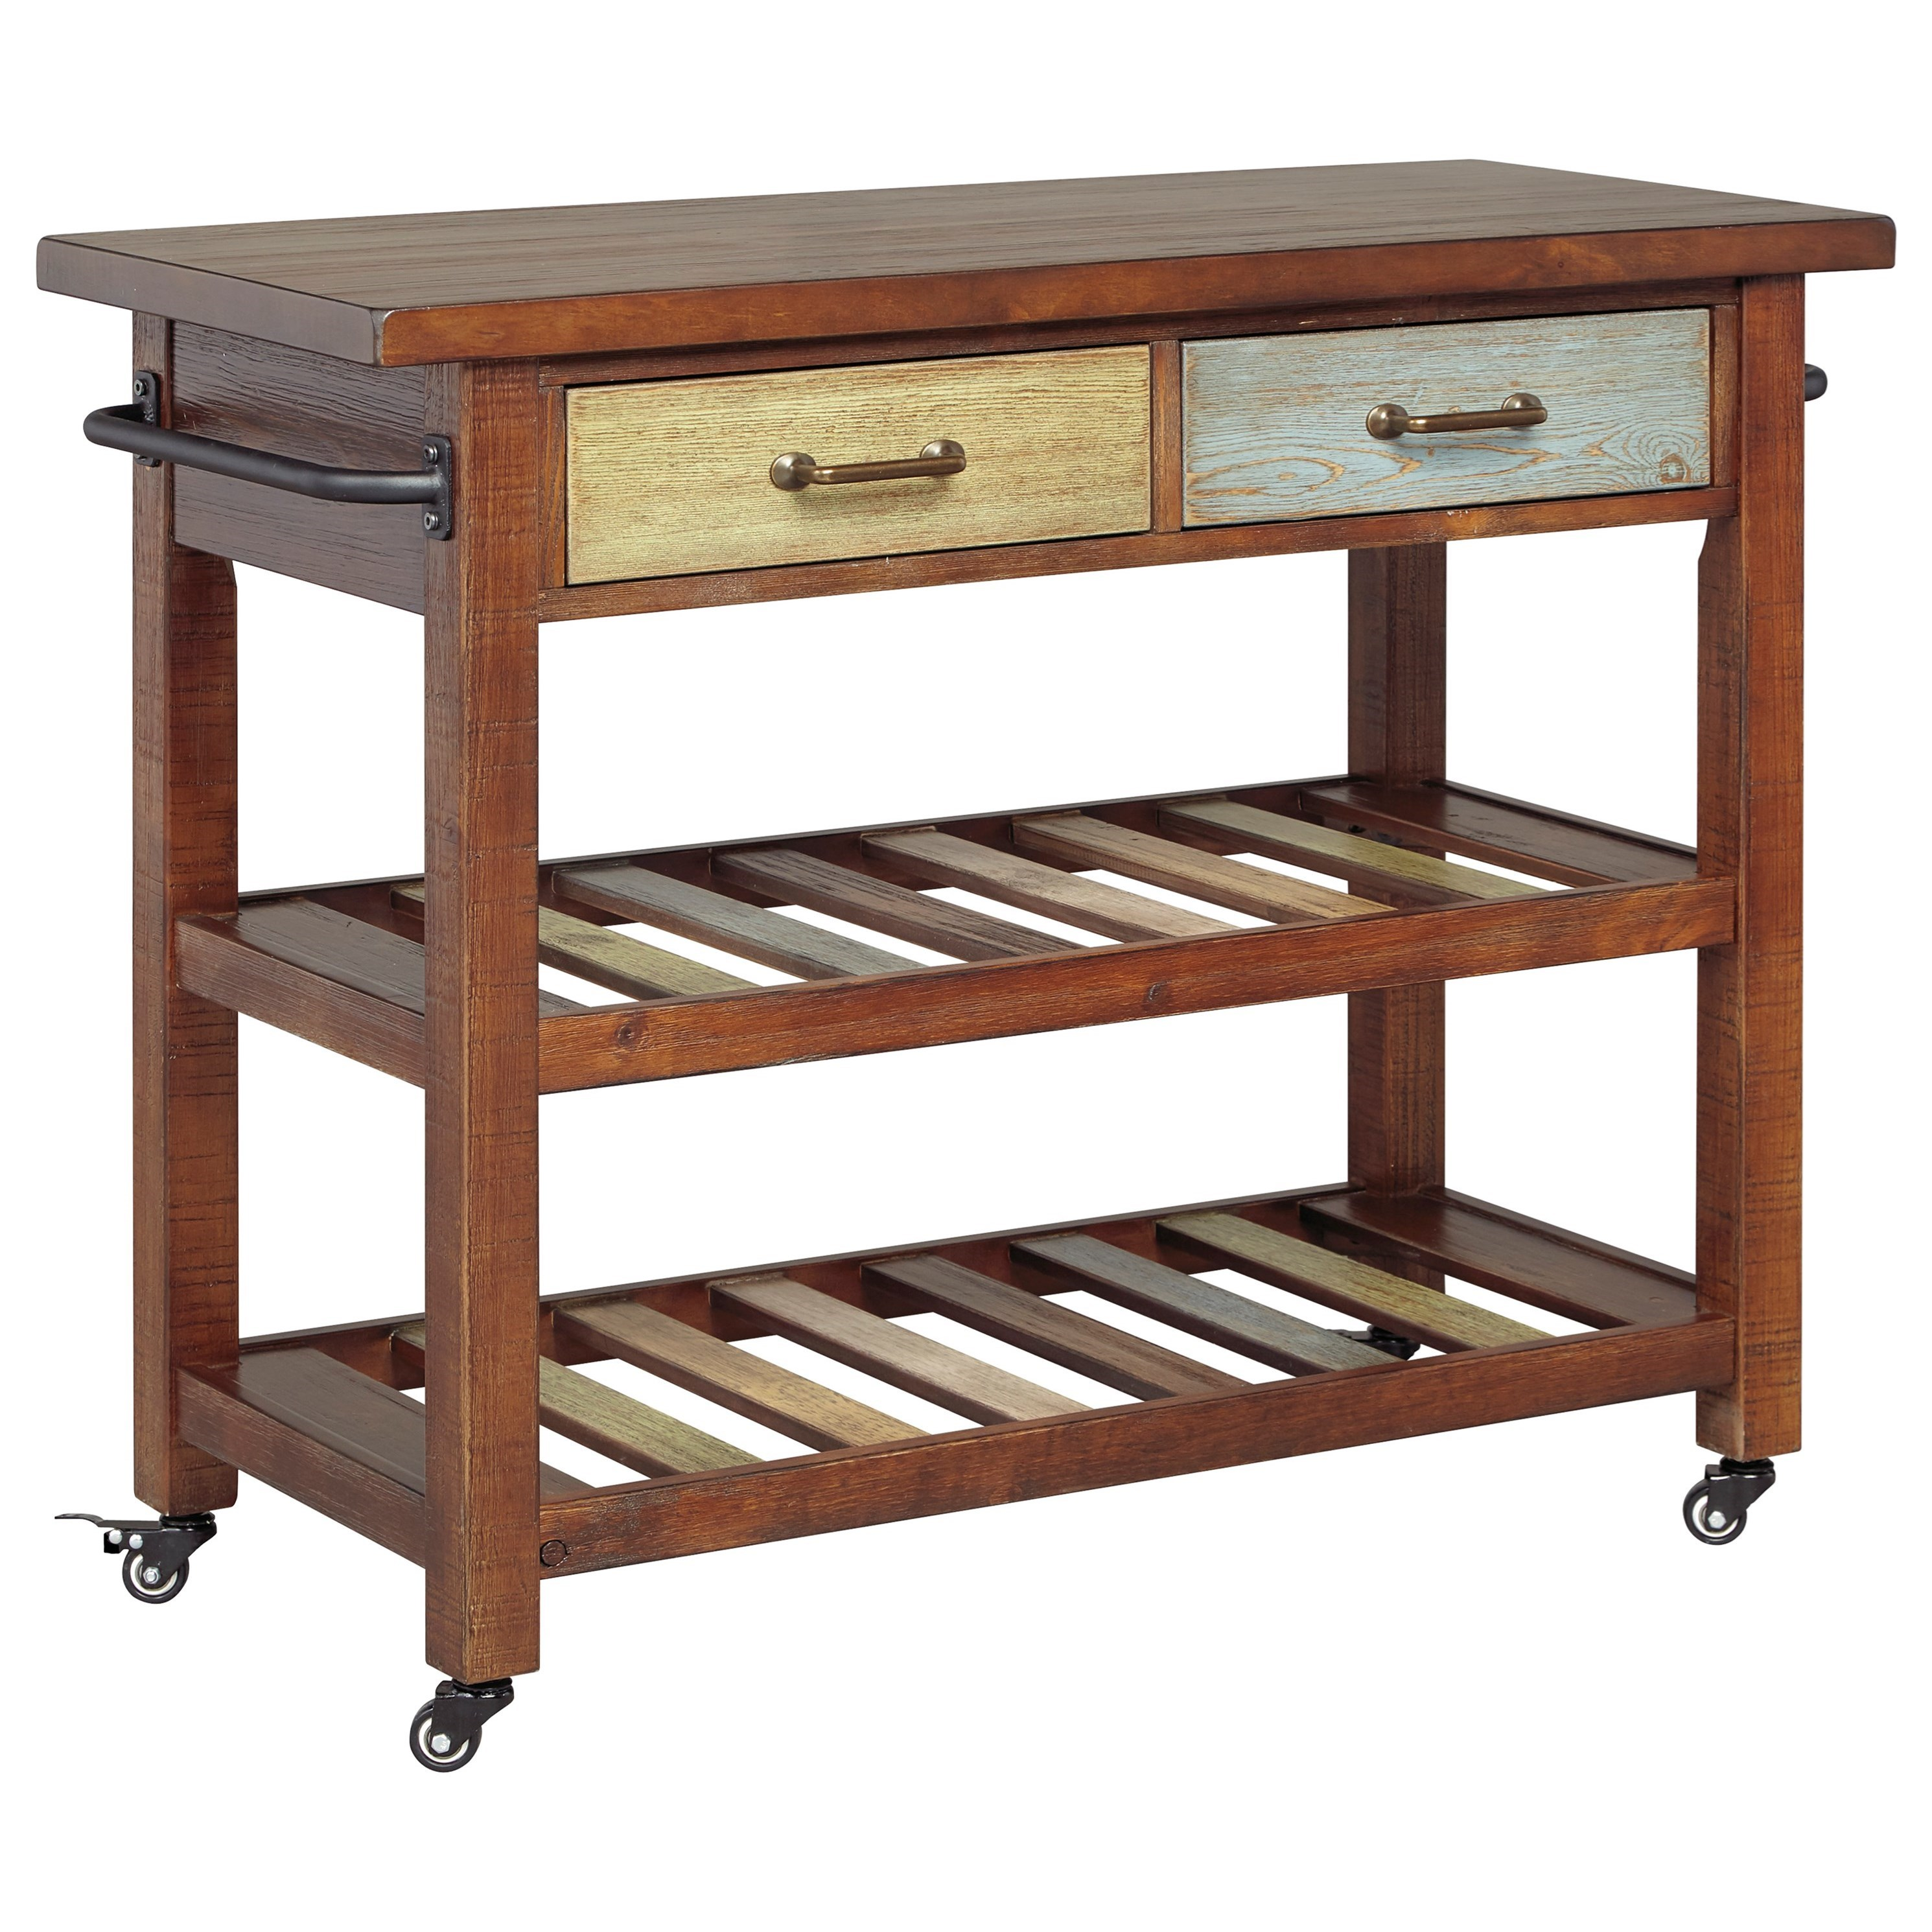 kitchen chairs with casters Multicolor Kitchen Cart with Locking Casters